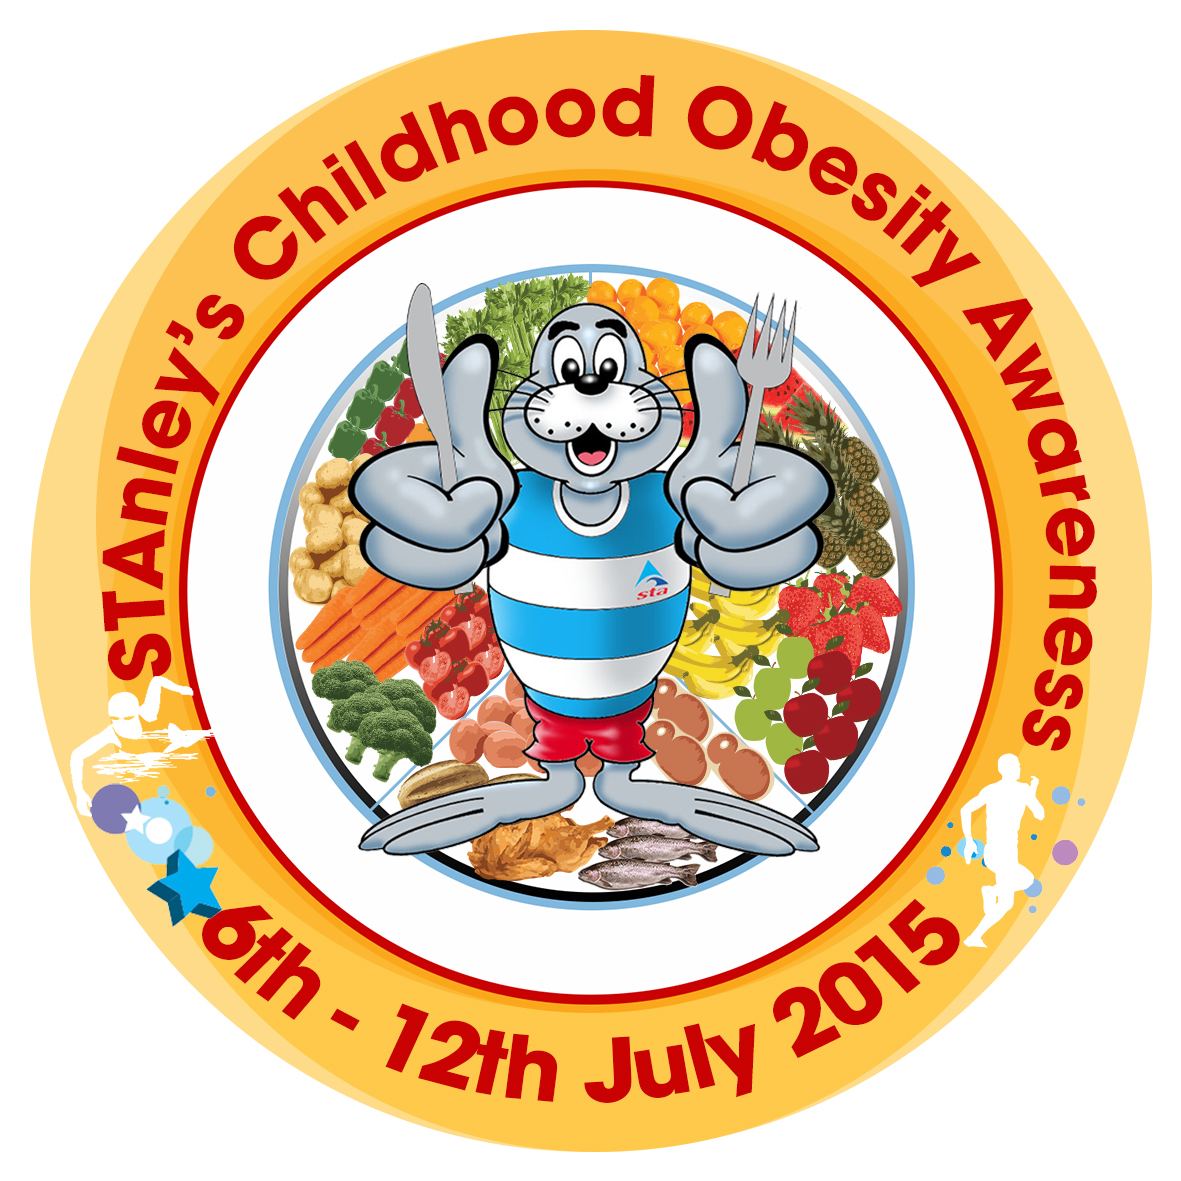 Childhood Obesity Awareness Week 06th To 12th July